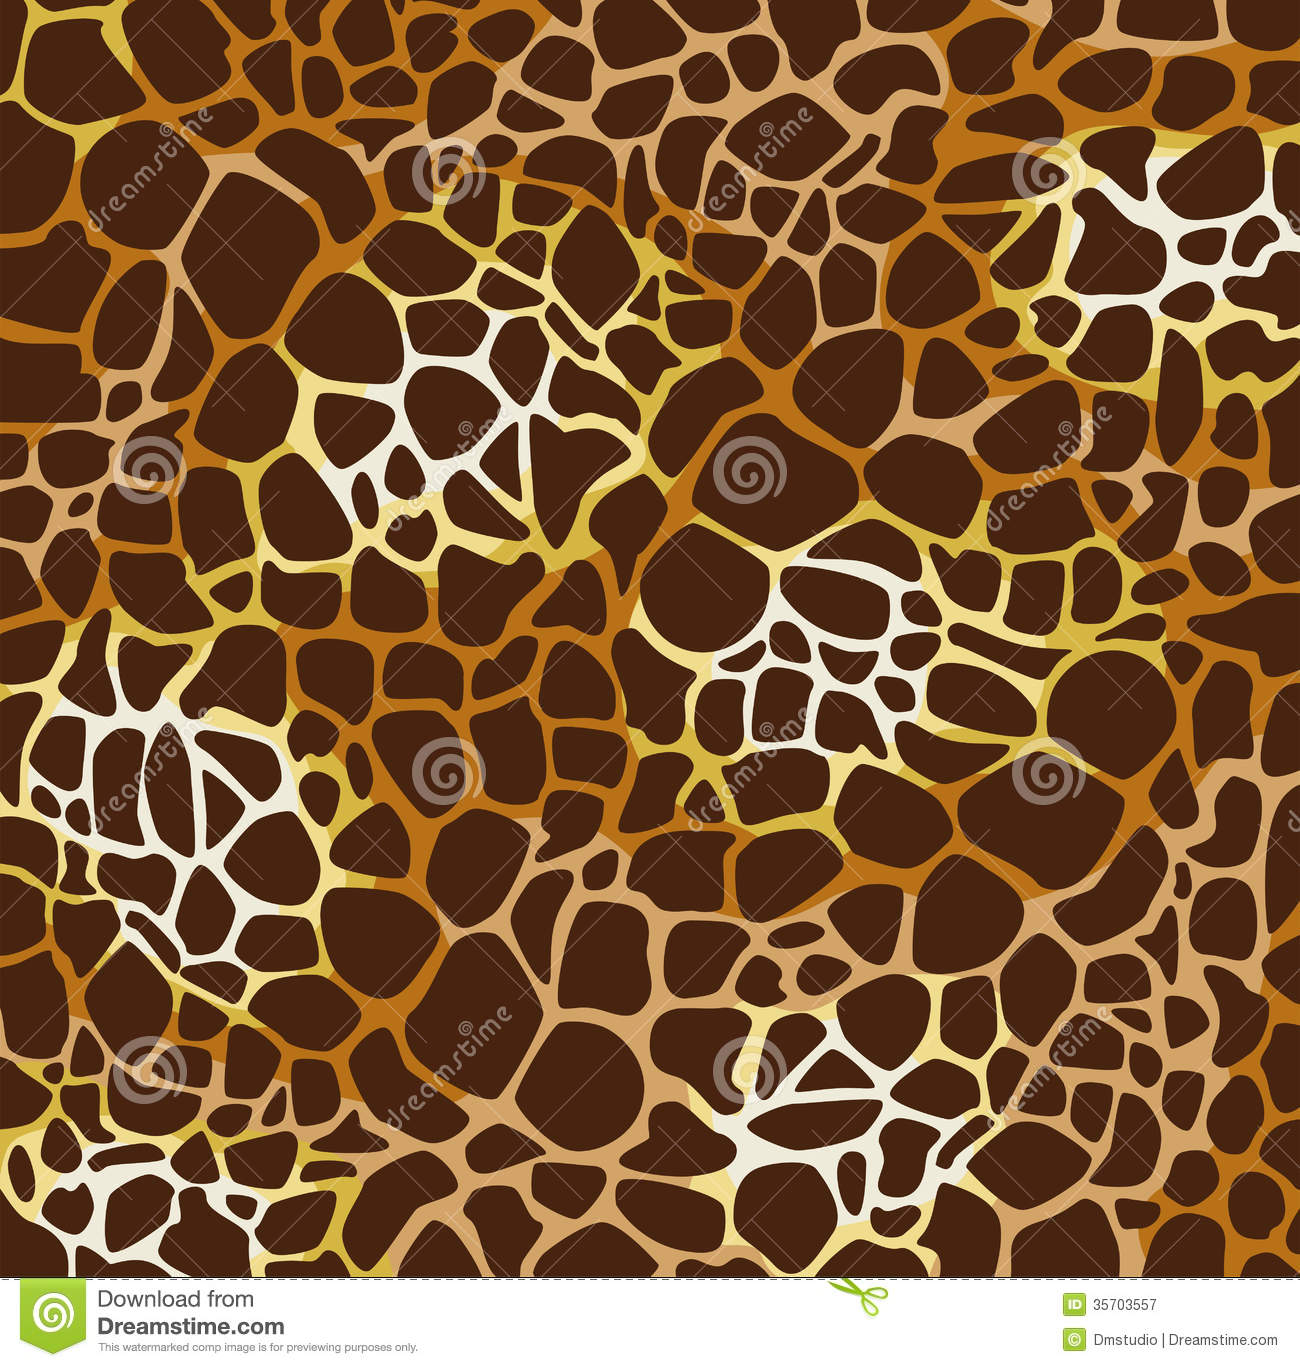 animal skin patterns giraffe - photo #8